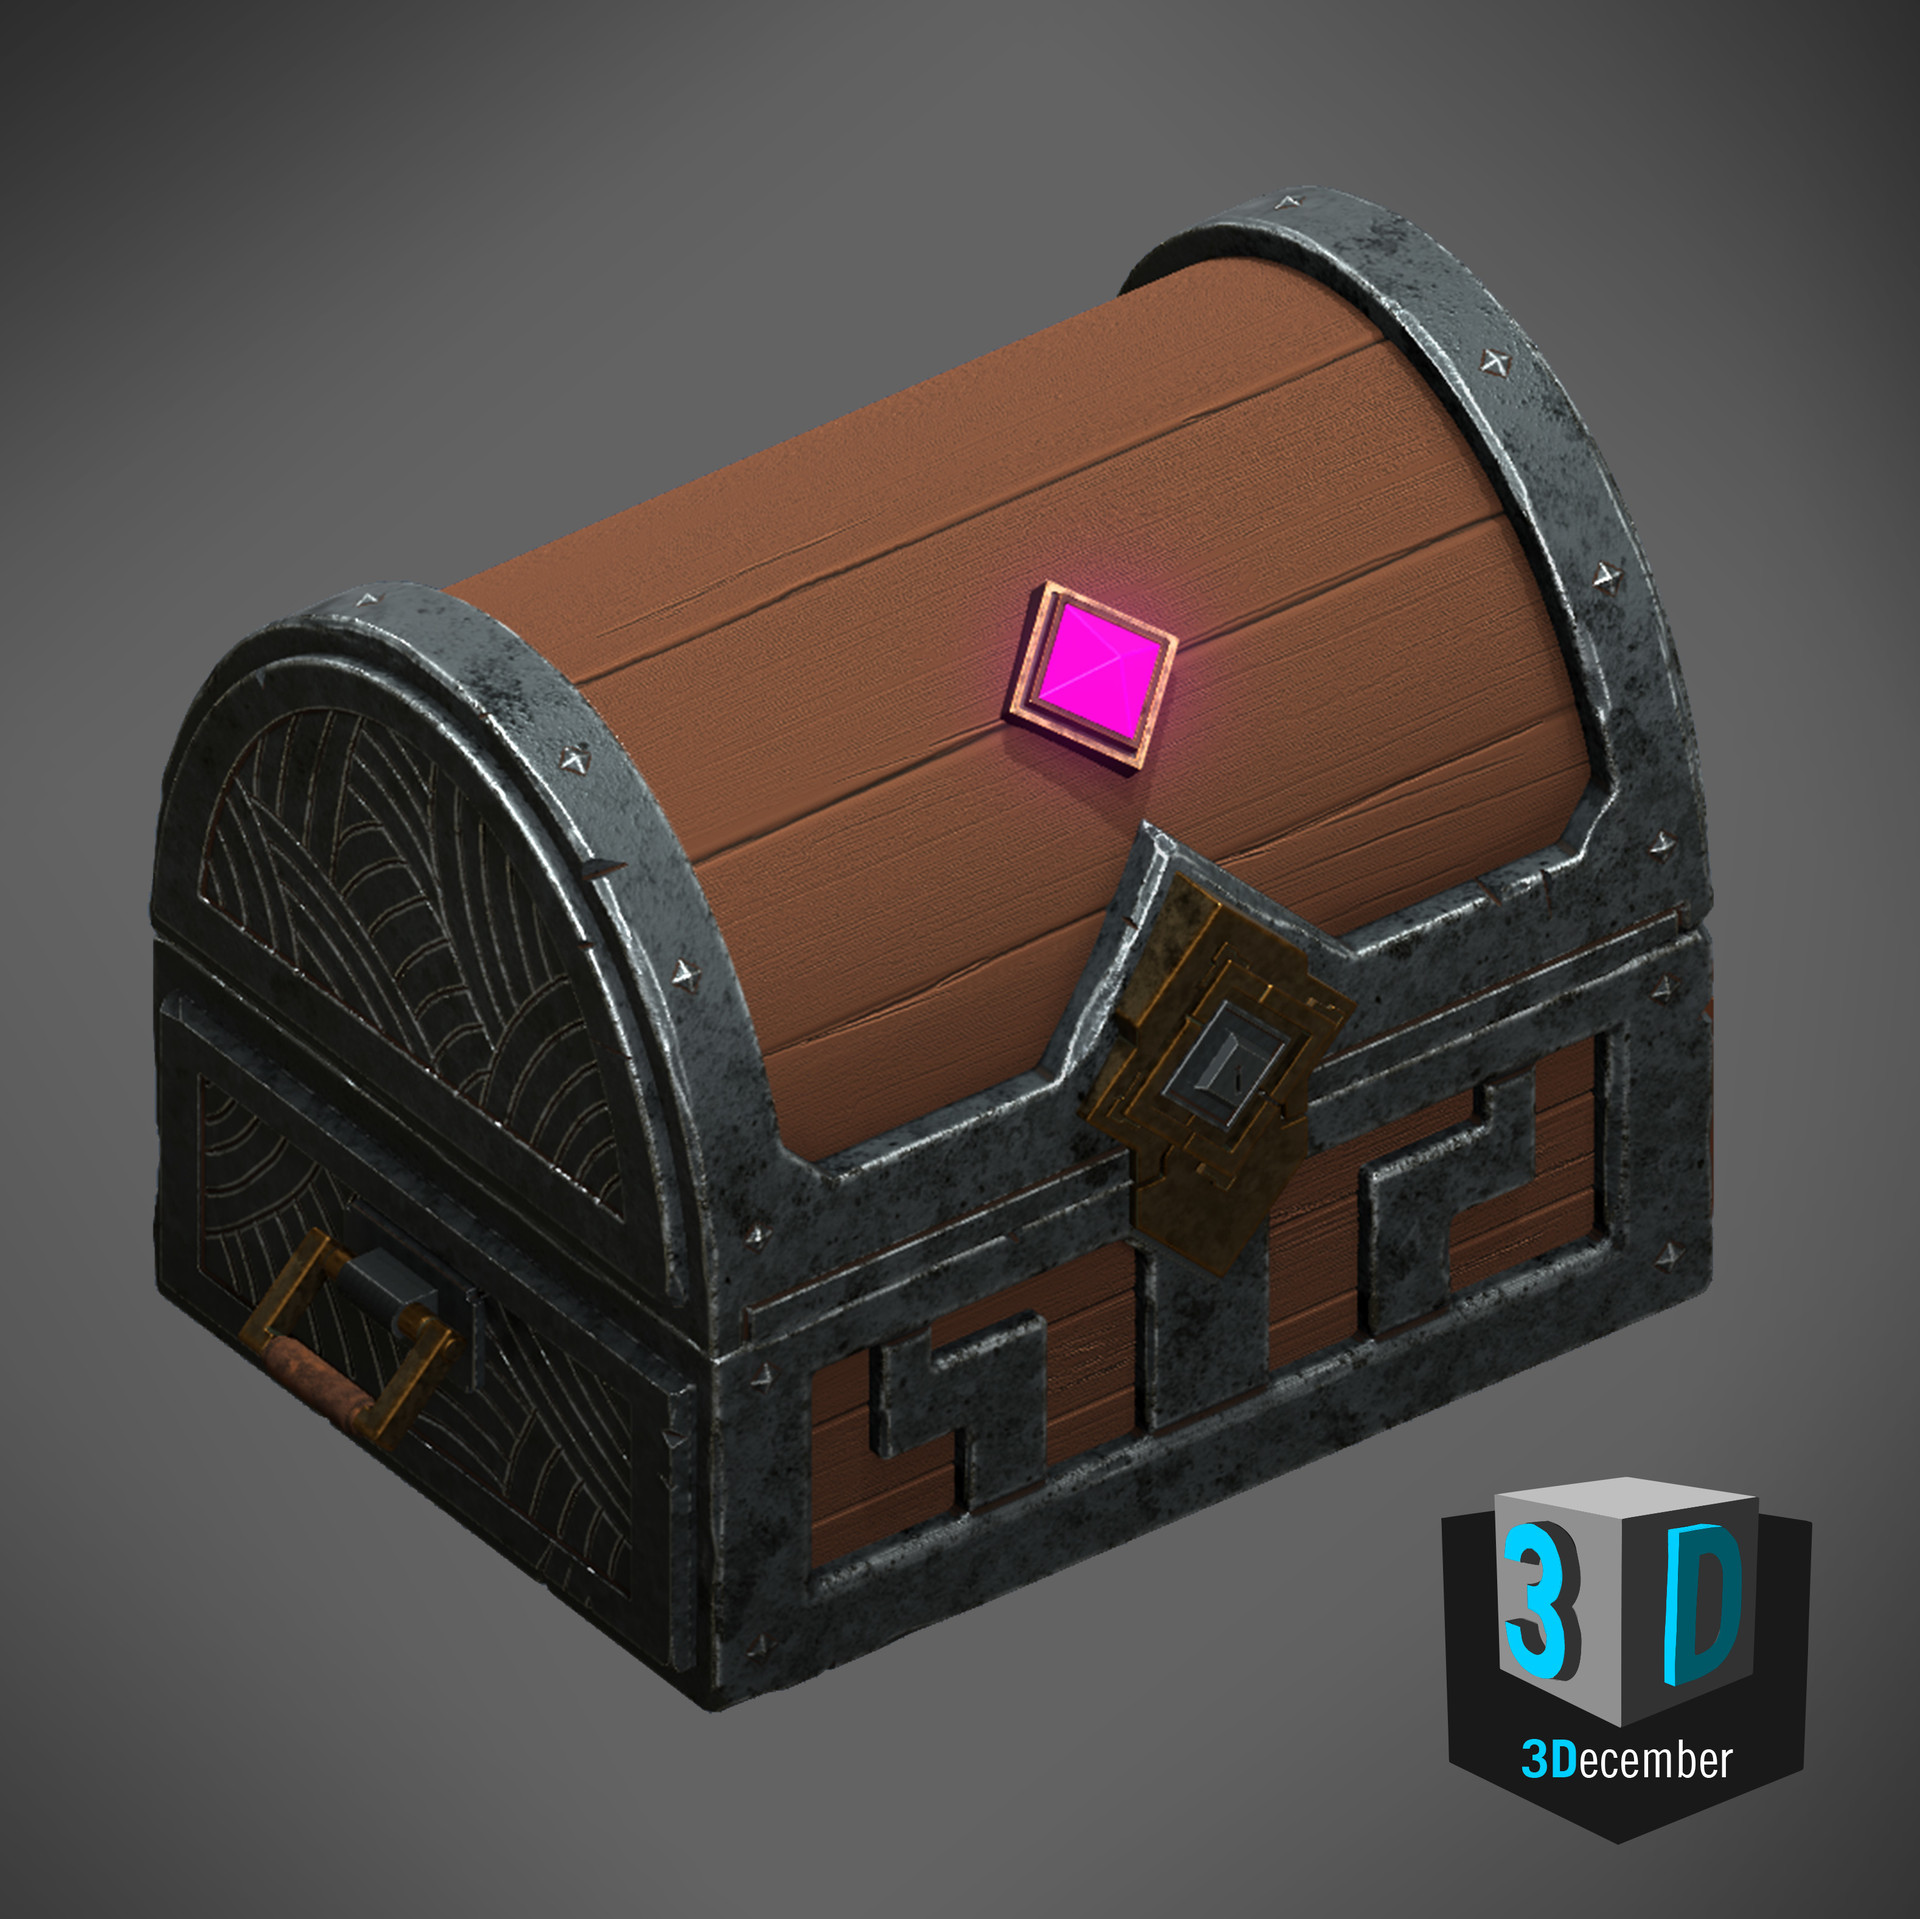 3December - Day 6 - Treasure Chest